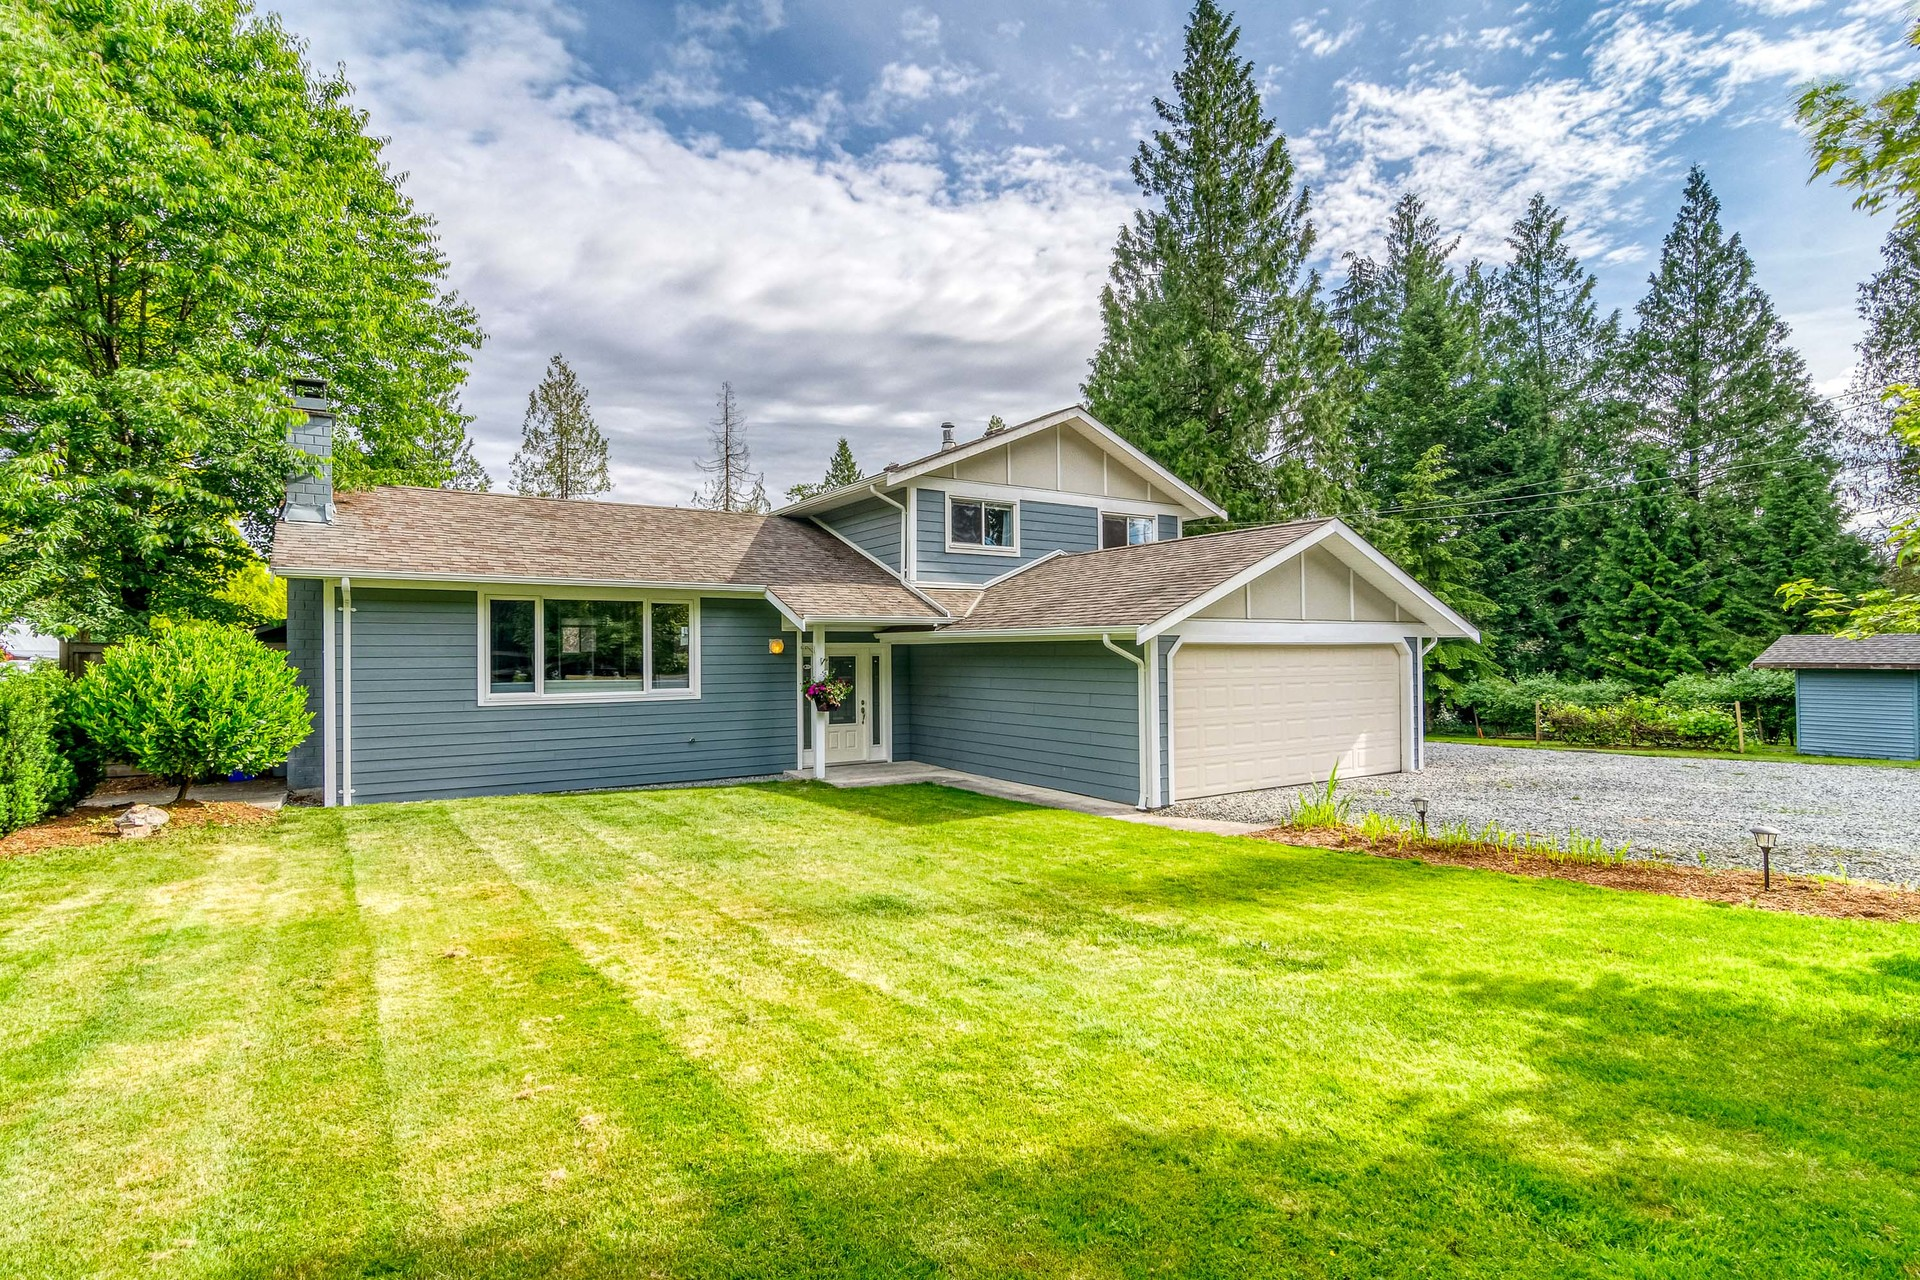 24133 61 Avenue, Salmon River, Langley 1